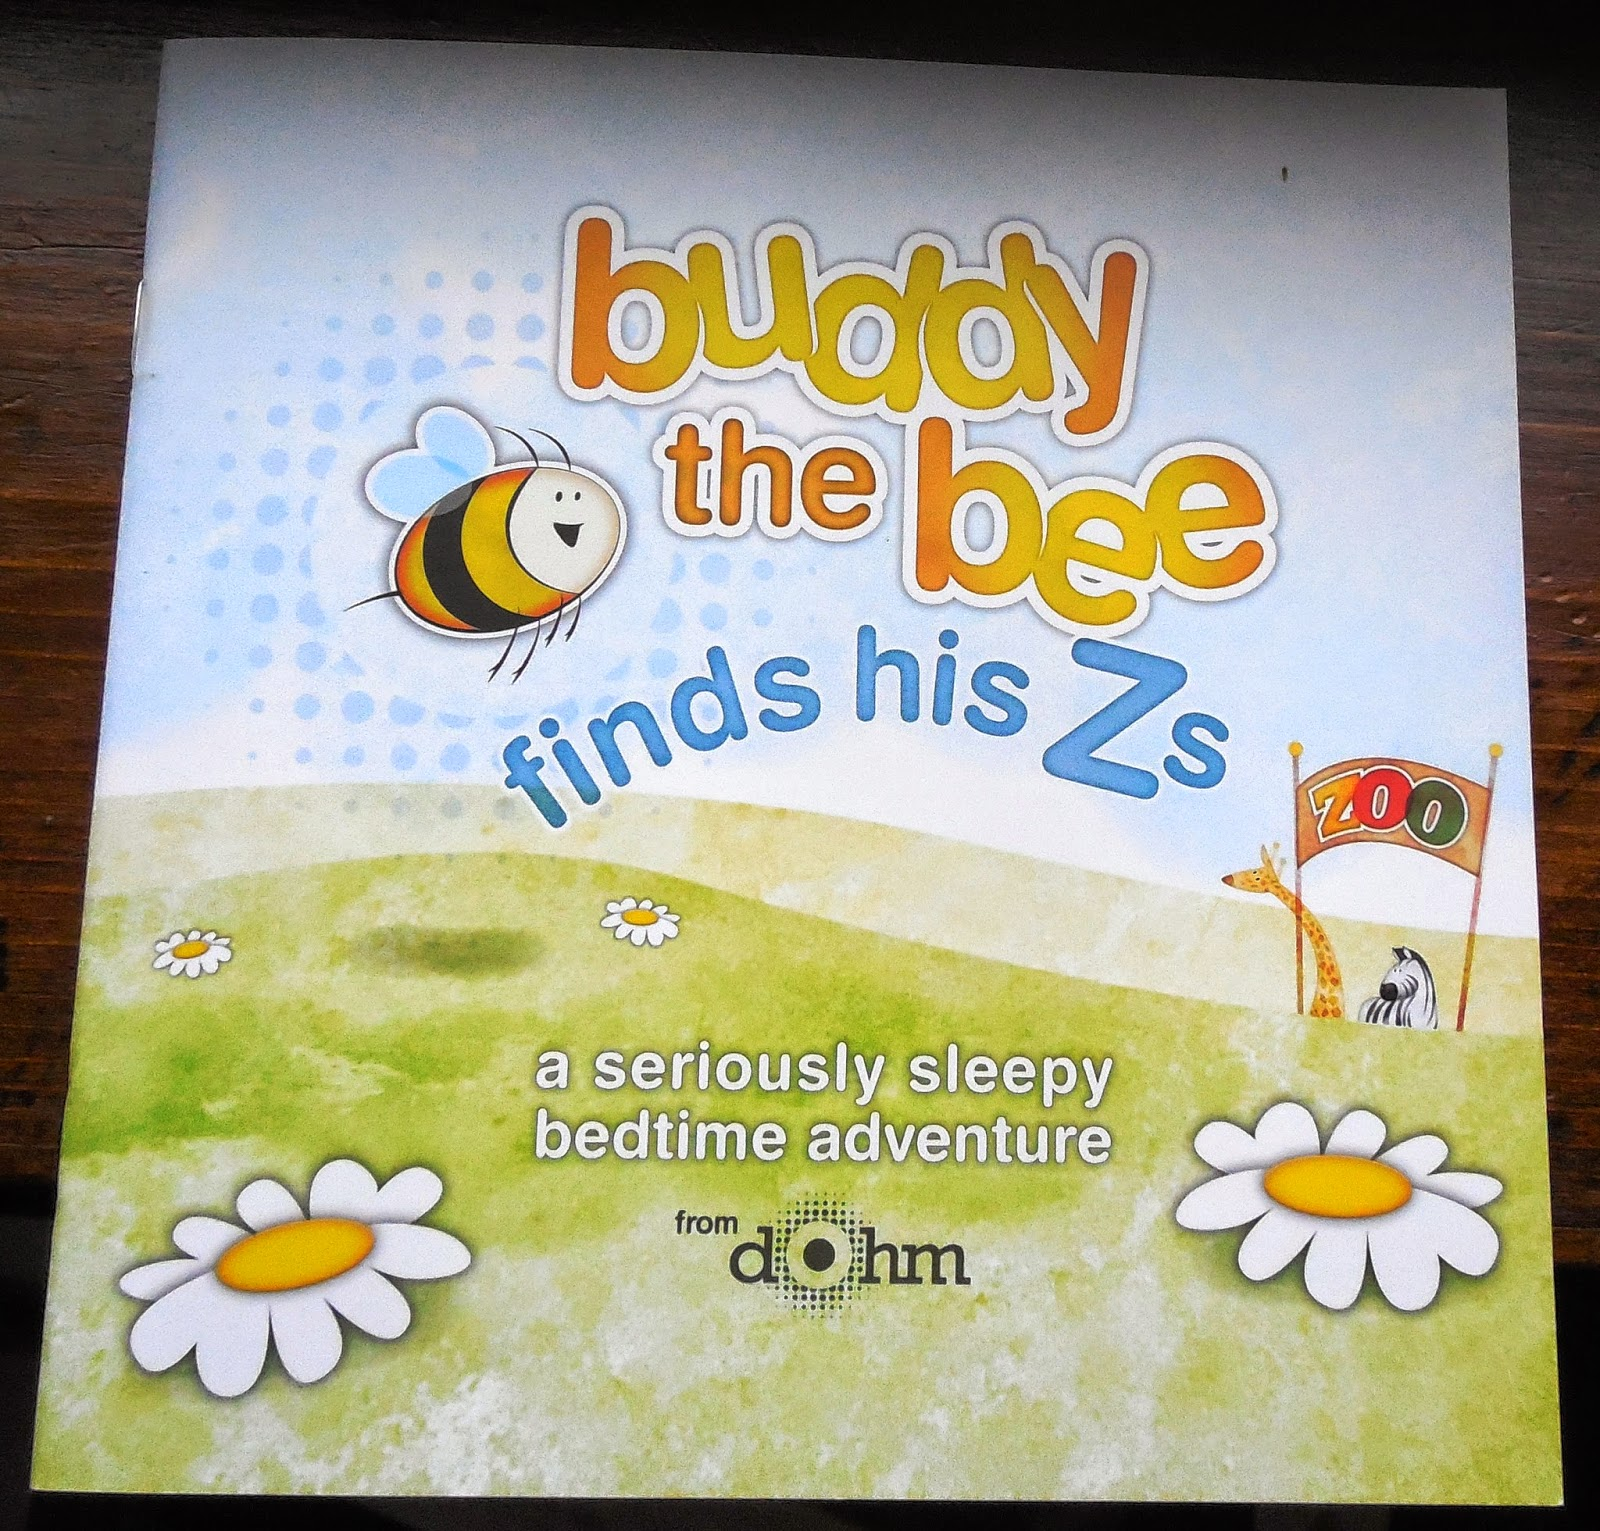 Buddy the bee